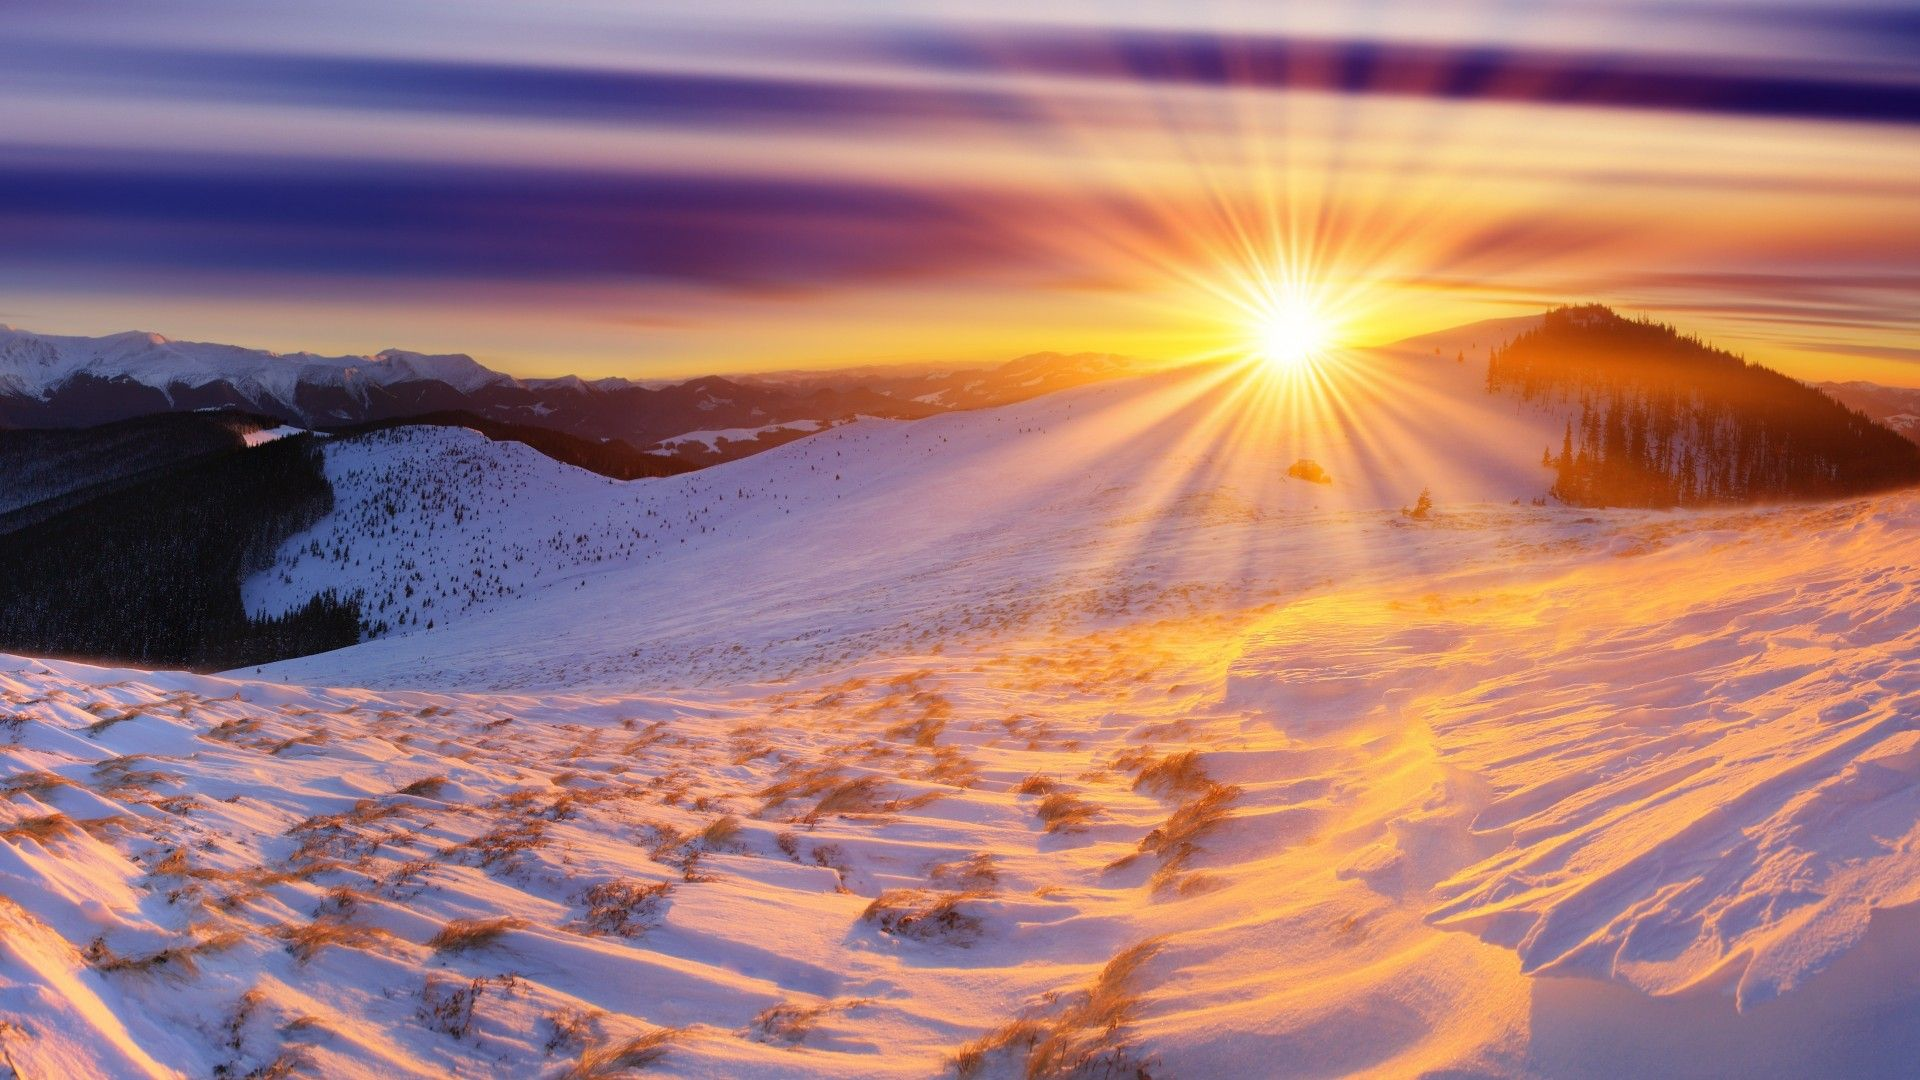 Nature Landscapes Mountains Snow Winter Sky Clouds Hdr Sunset